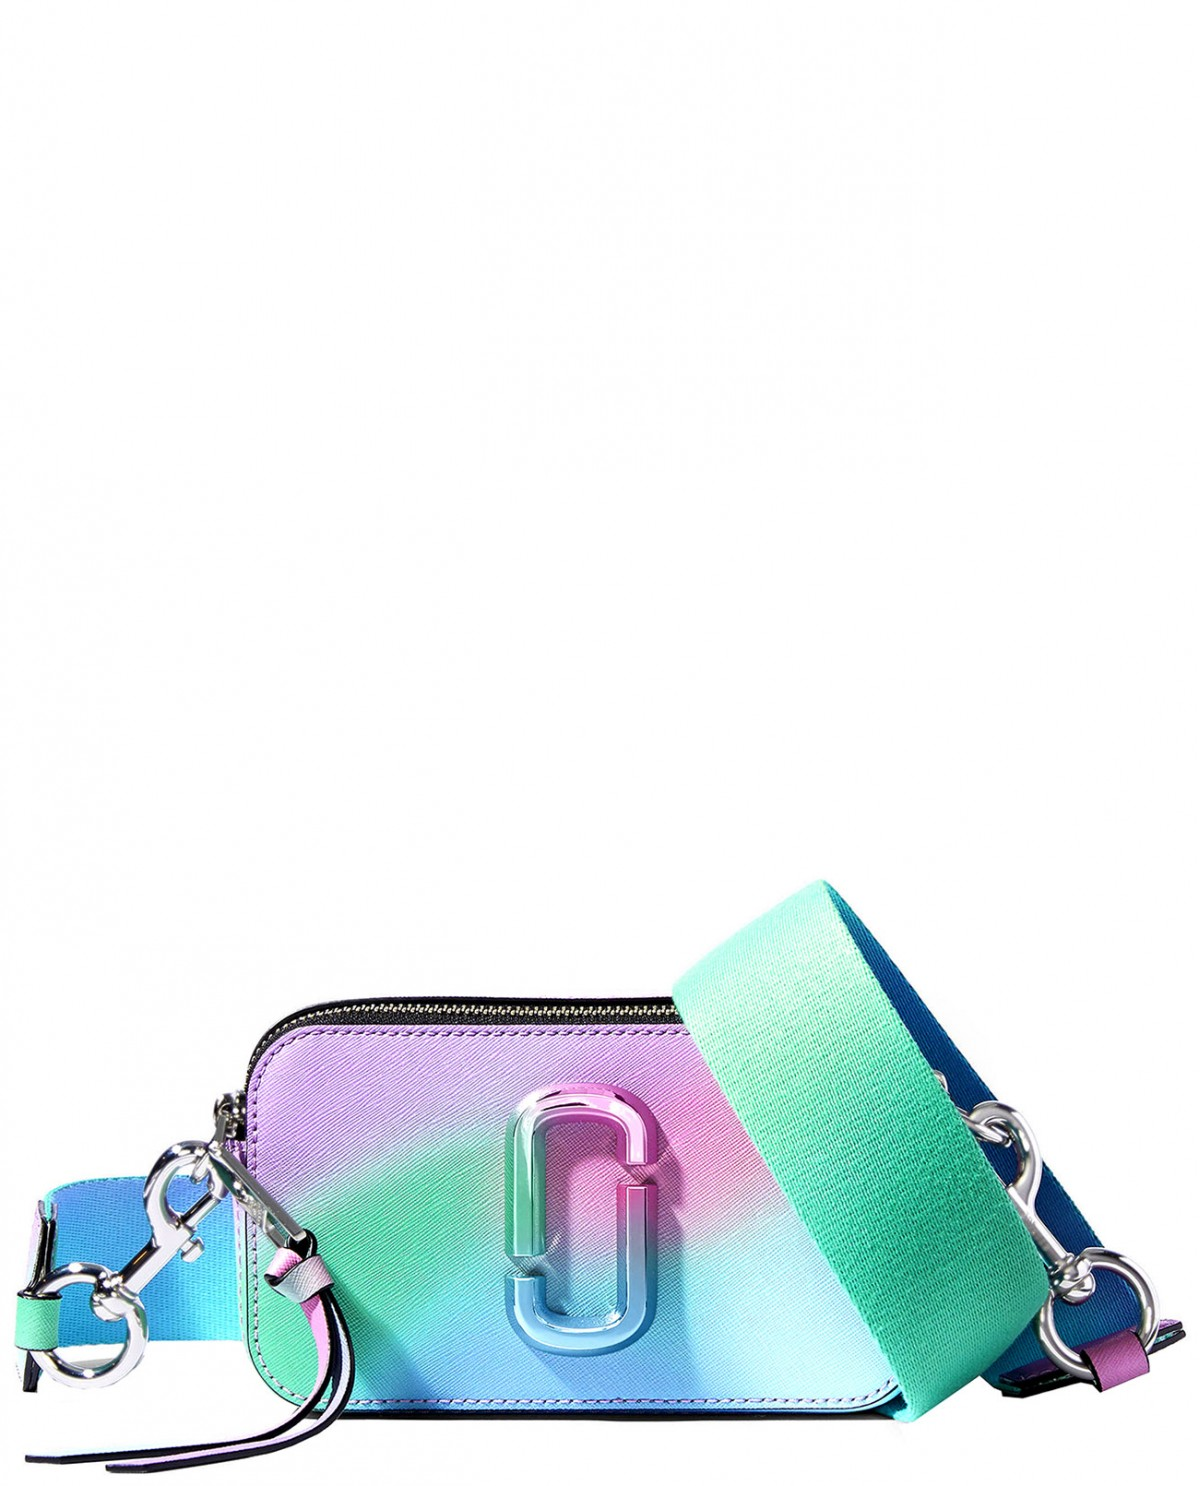 The Marc Jacobs airbrushed Snapshot bag